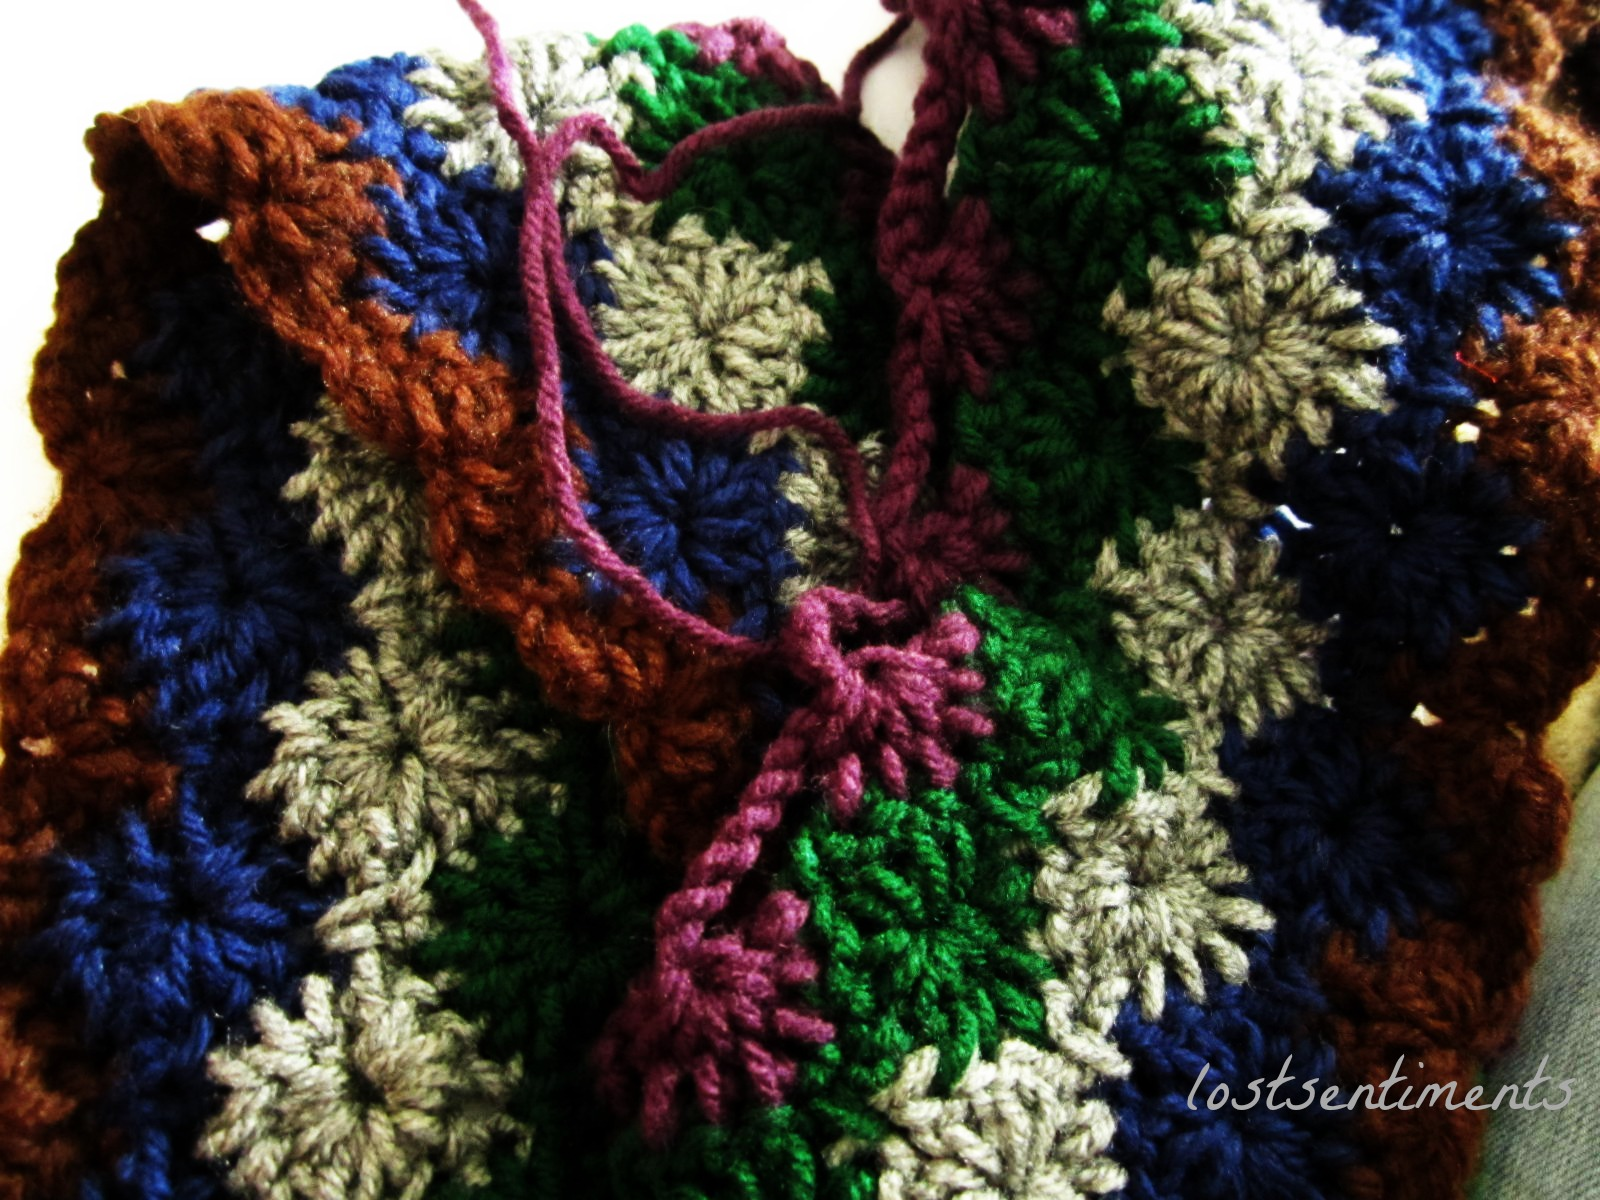 Free Crochet Harlequin Blanket Pattern : lostsentiments: Beginning of Harlequin Pattern Blanket ...